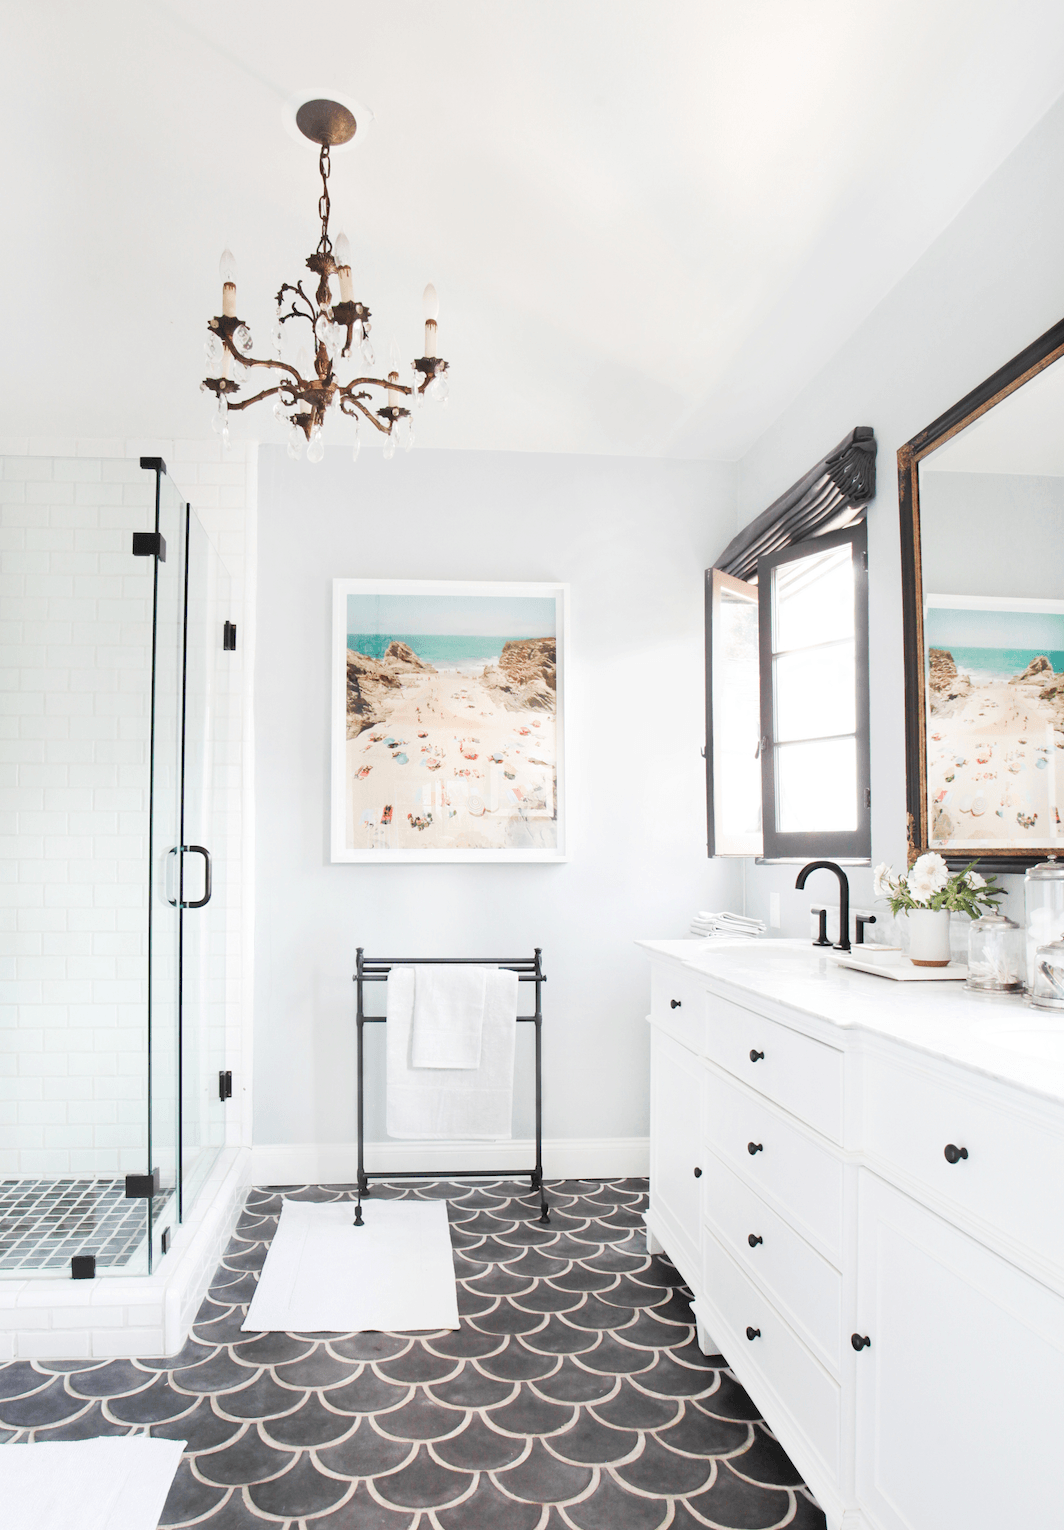 Fish Scale Tiles in White Bathroom